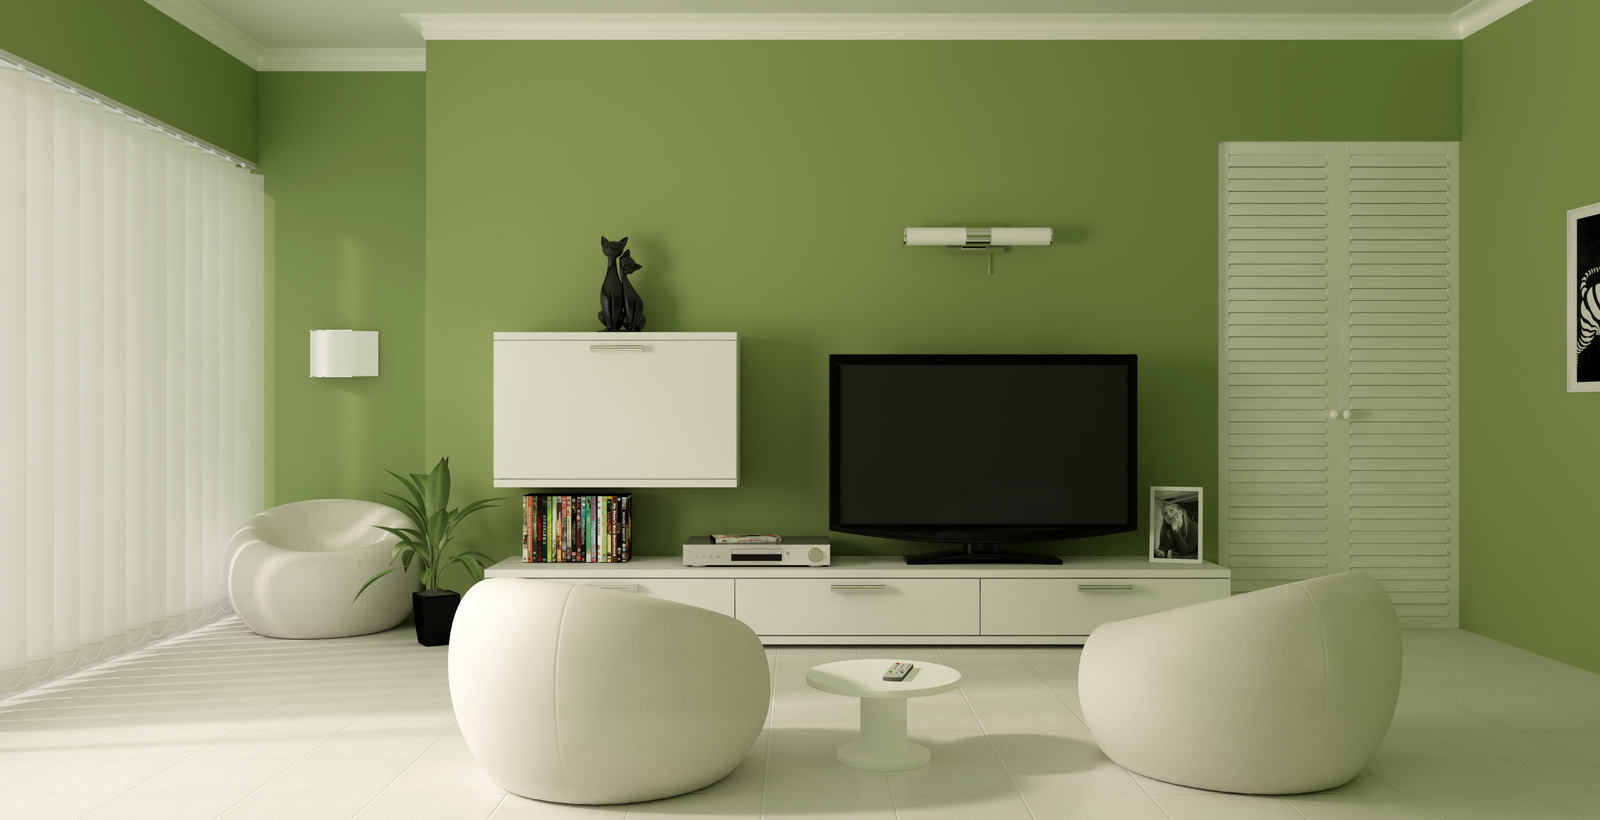 Experiment with wall paint colors green to make your Home feel Alive